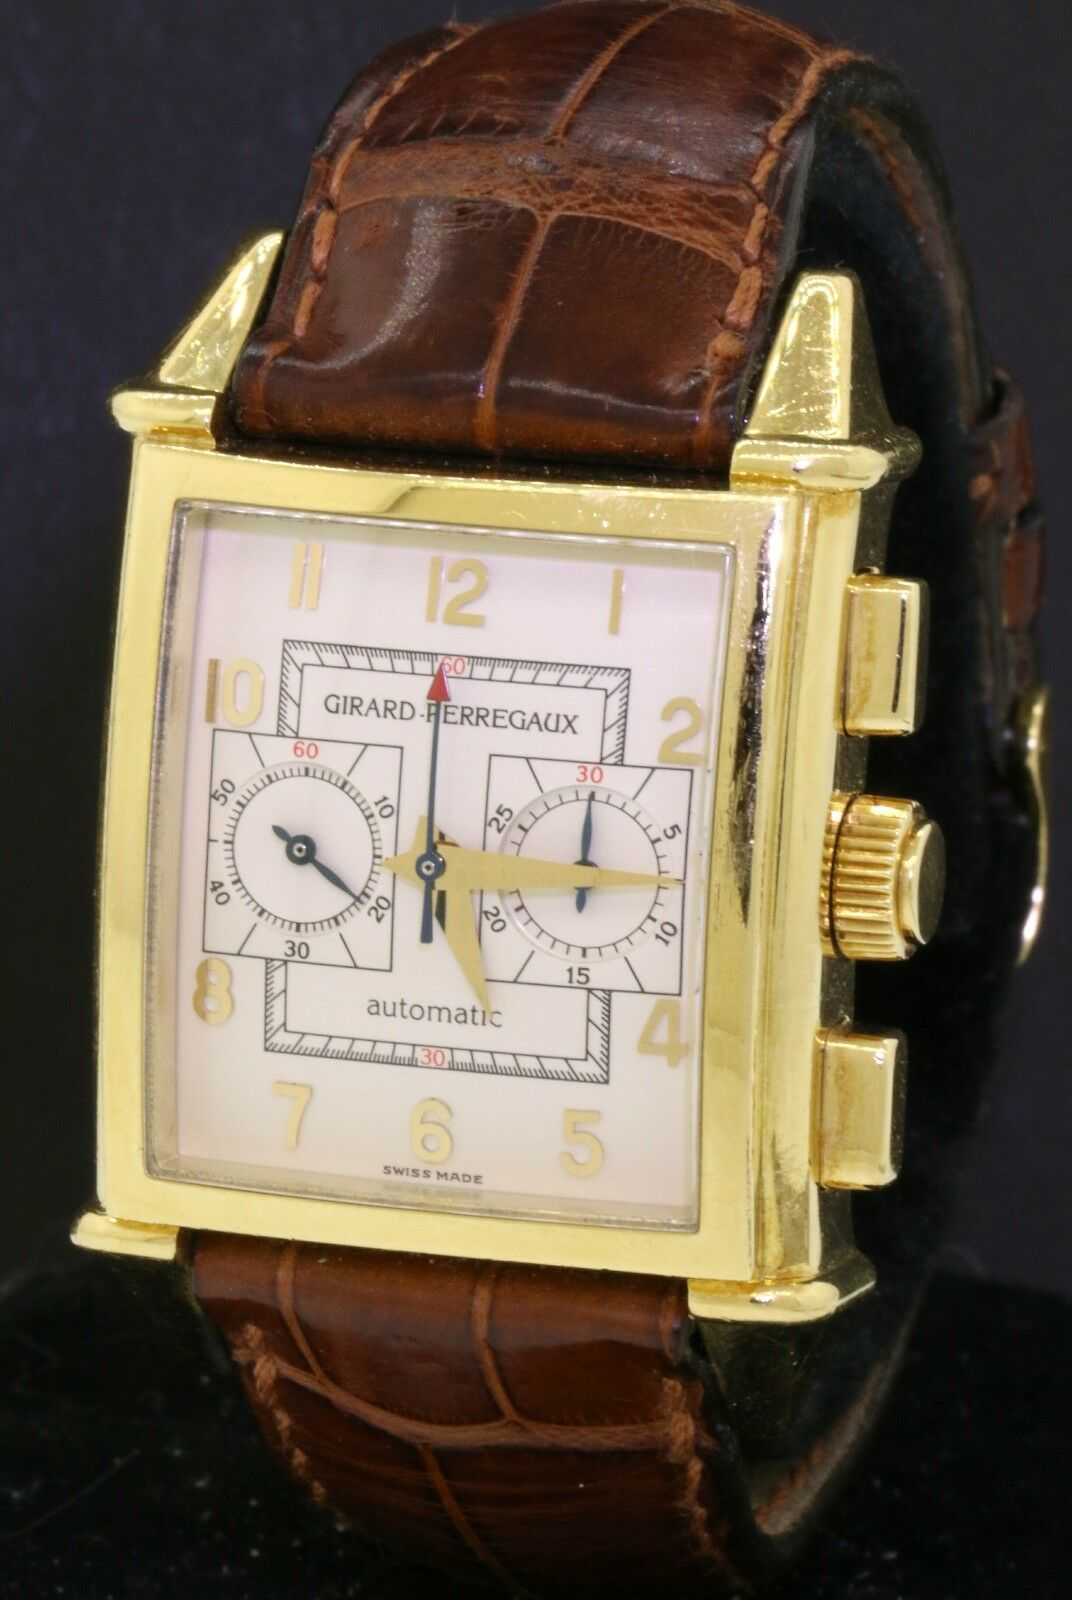 Girard Perregaux 2599 vintage 18K gold automatic chronograph men's watch - watch picture 1